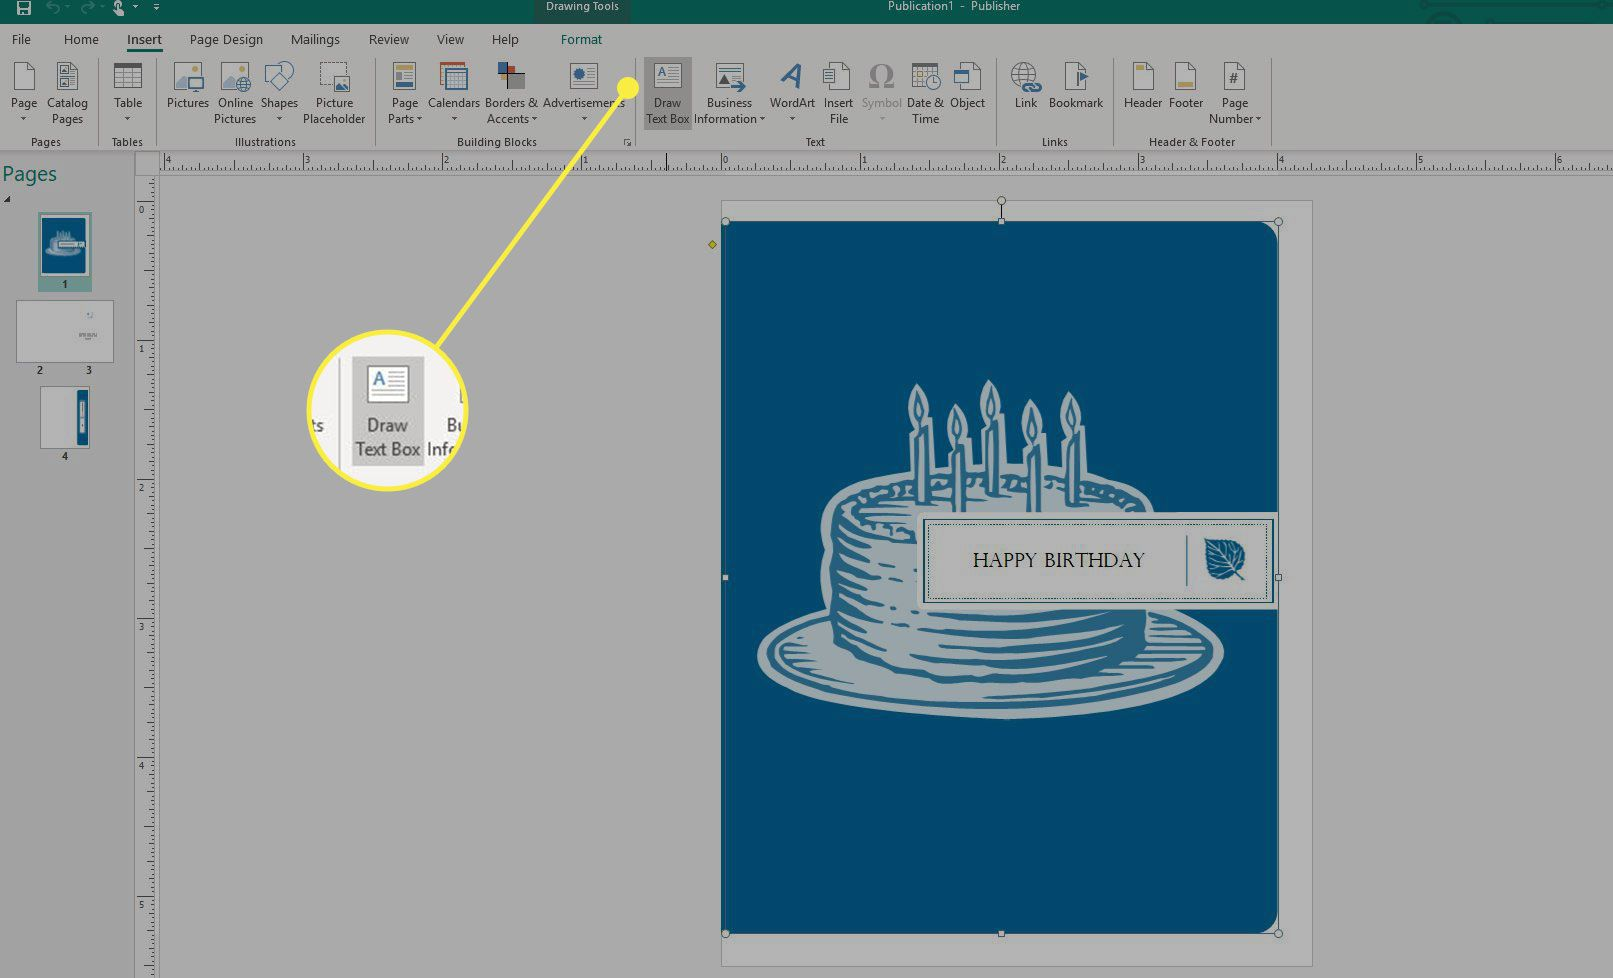 A screenshot of Microsoft Publisher with the Draw Text Box button highlighted